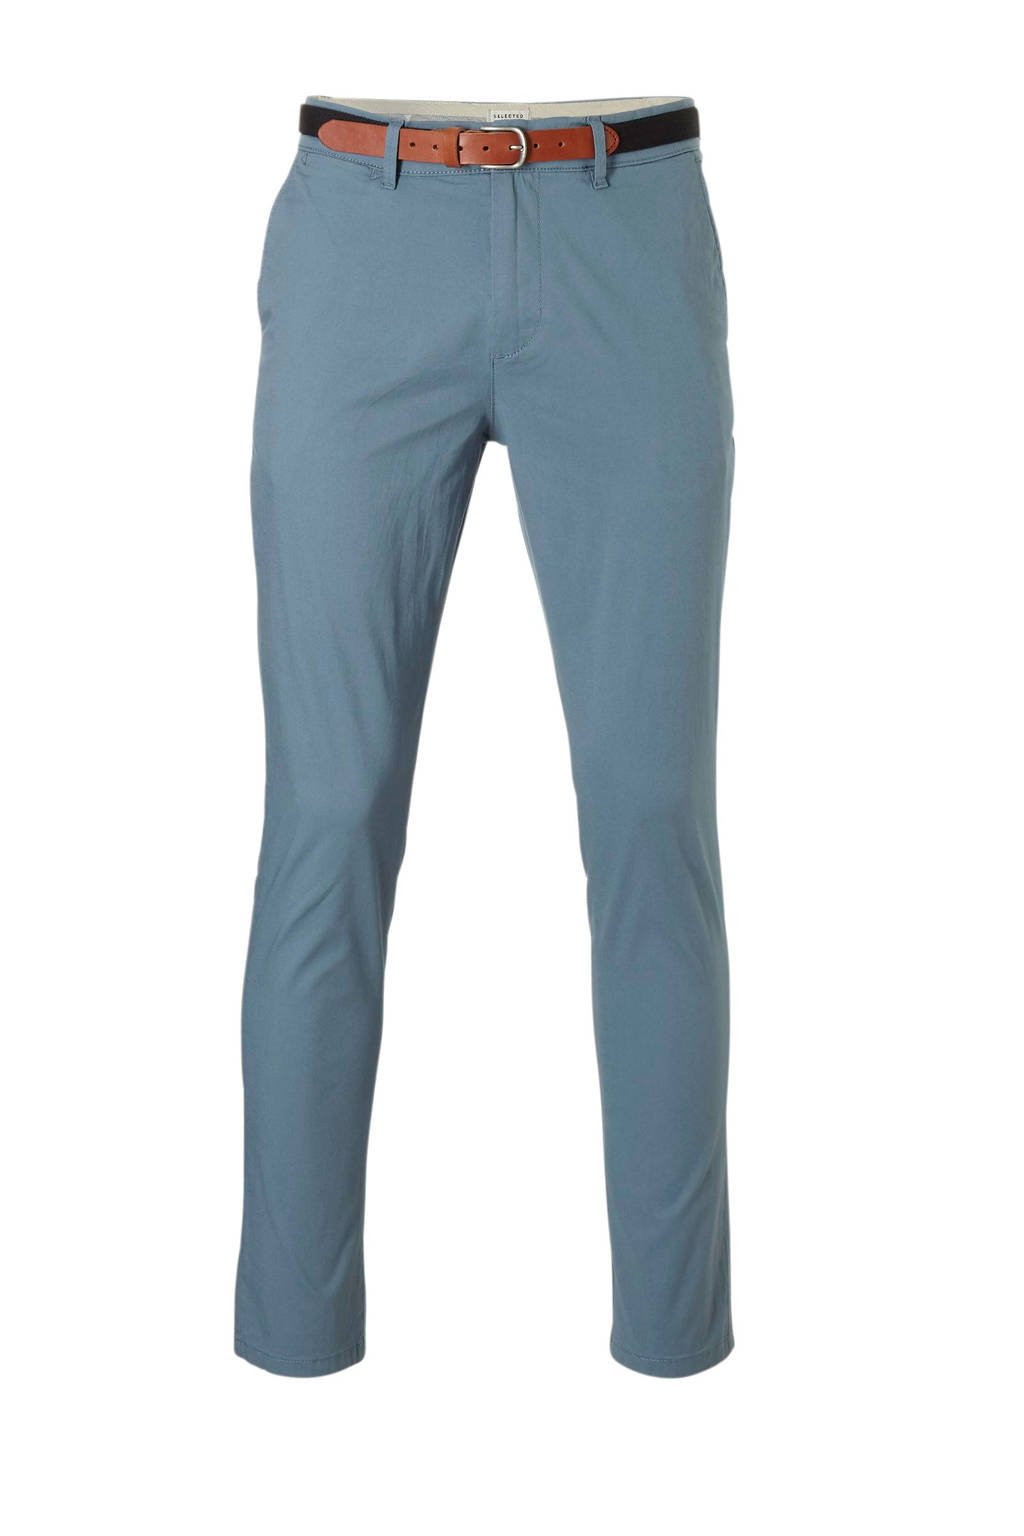 SELECTED HOMME slim fit chino, Blauw